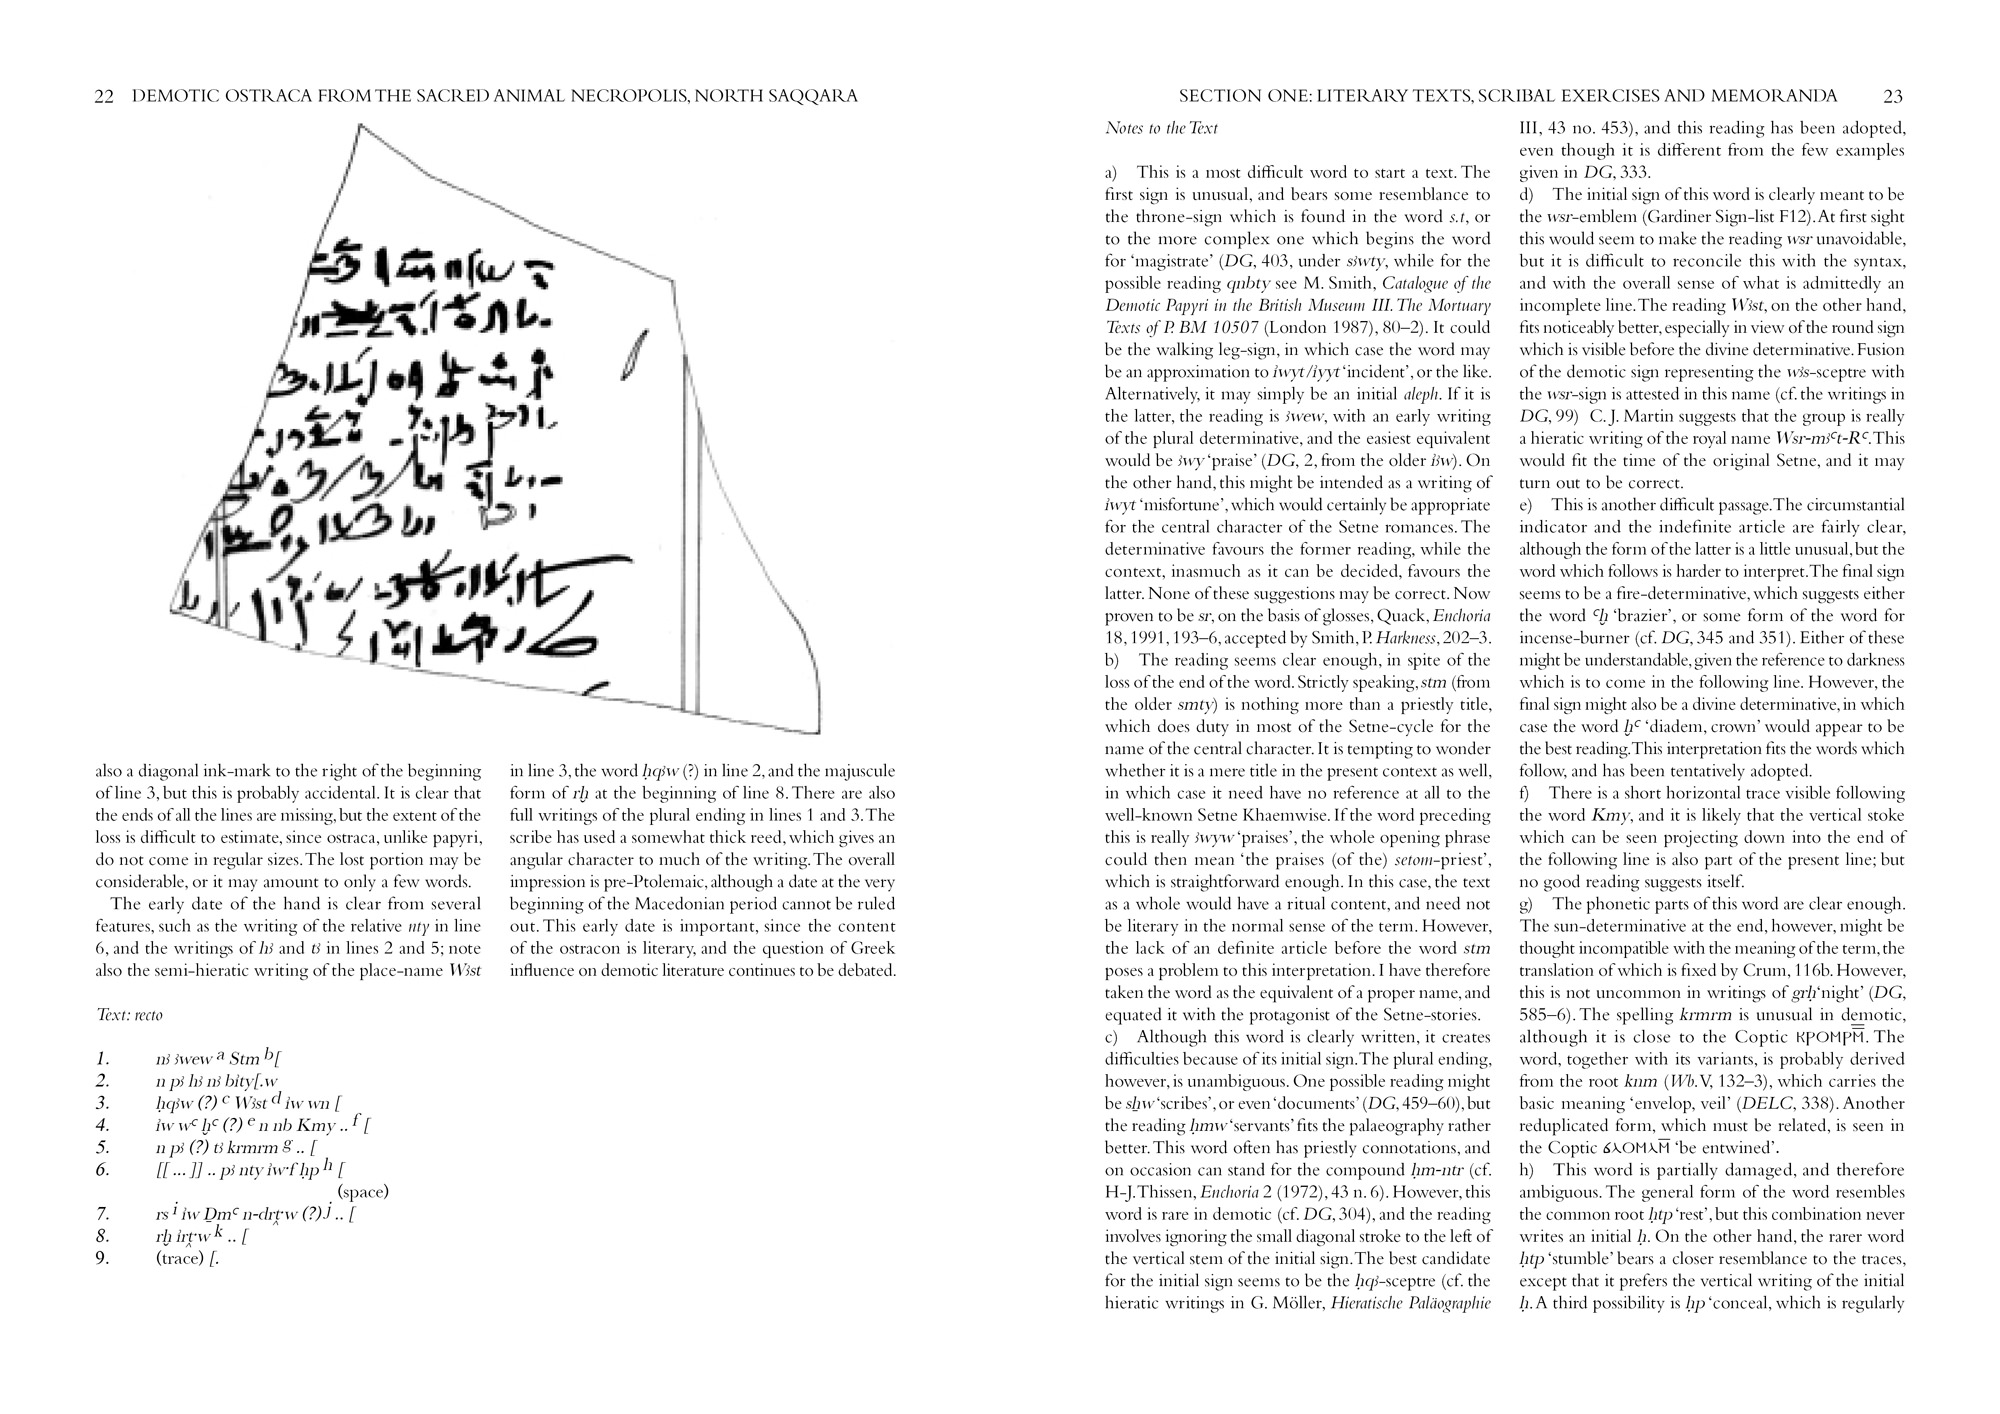 Sample page from Ray's Demotic ostraca